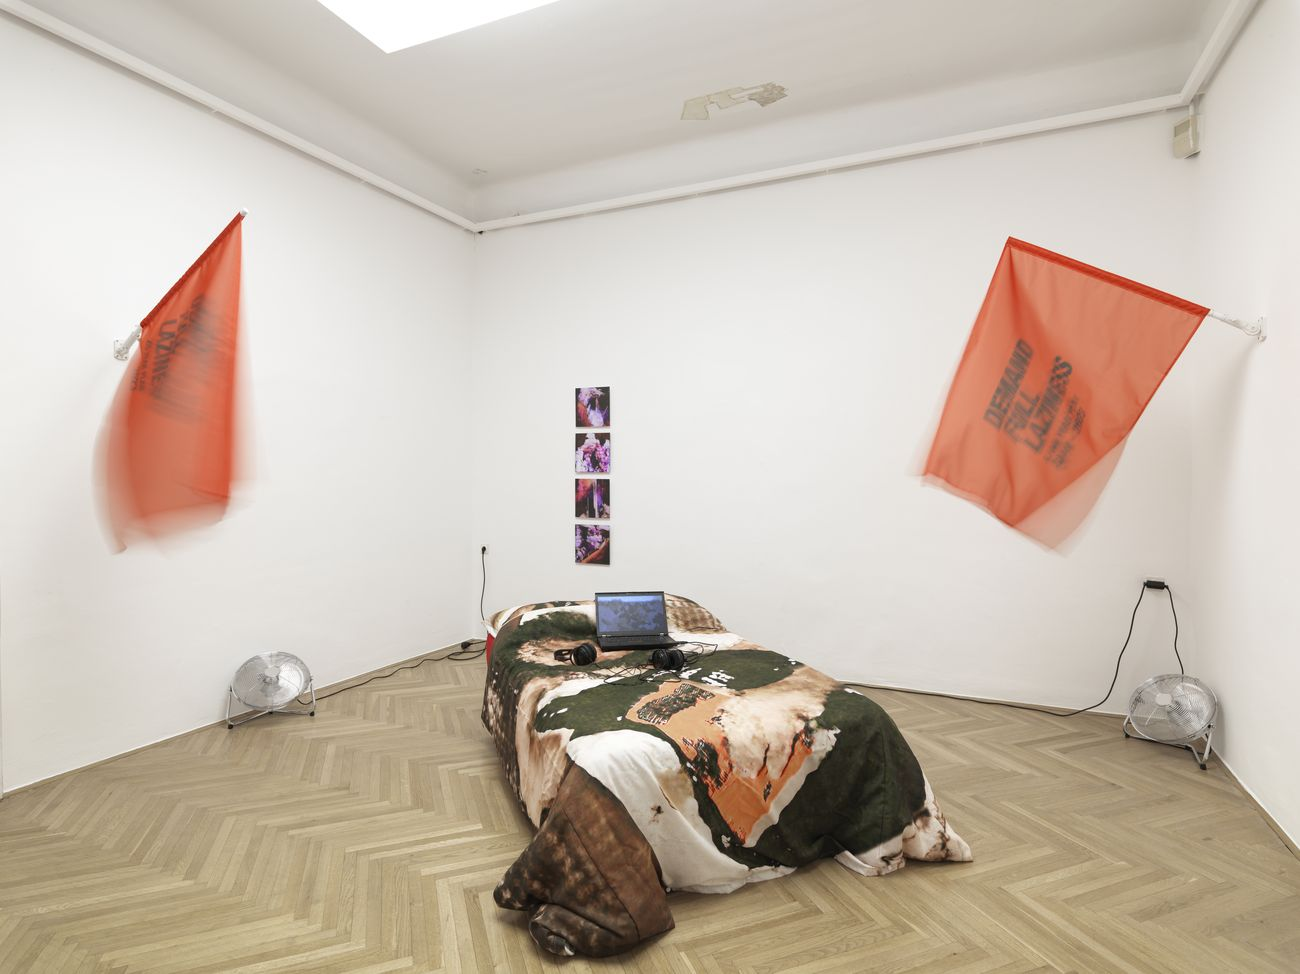 Hyperemployment. Installation view at MGLC International Centre of Graphic Arts, Lubiana 2019. Guido Segni Photo Jaka Babnik Archive MGLC Aksioma